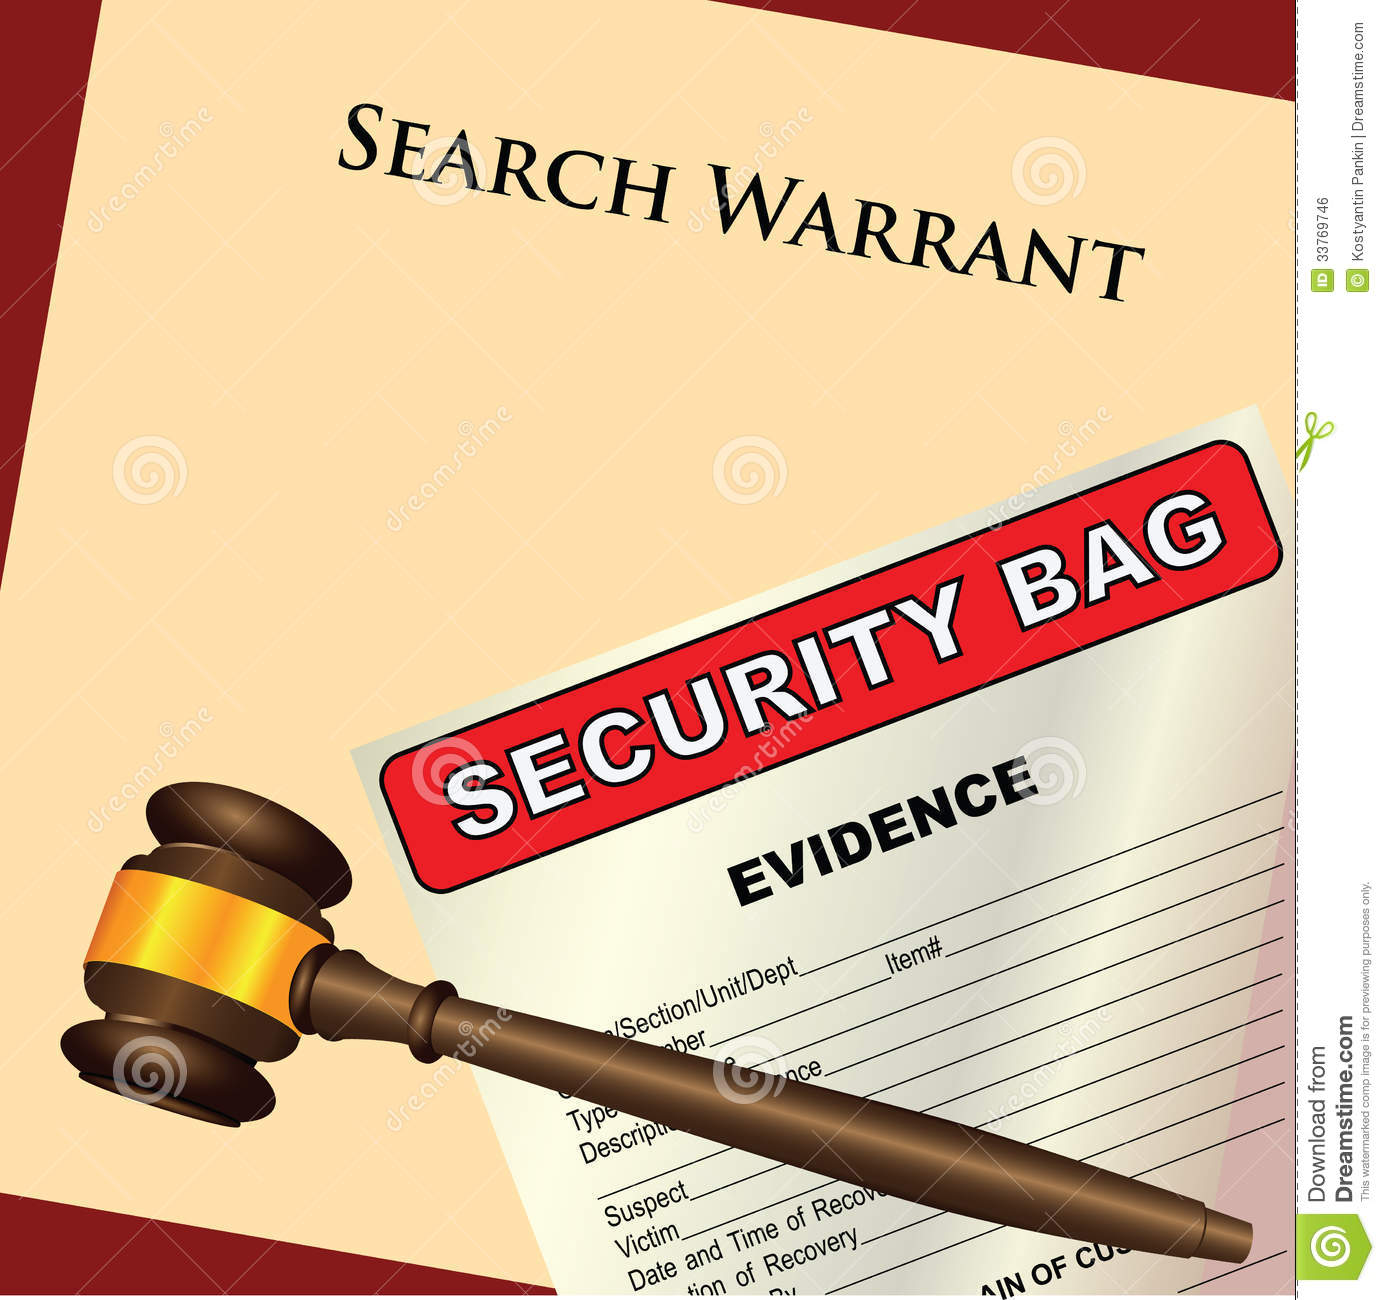 Search Warrant And Evidence Royalty Free Stock Image ...